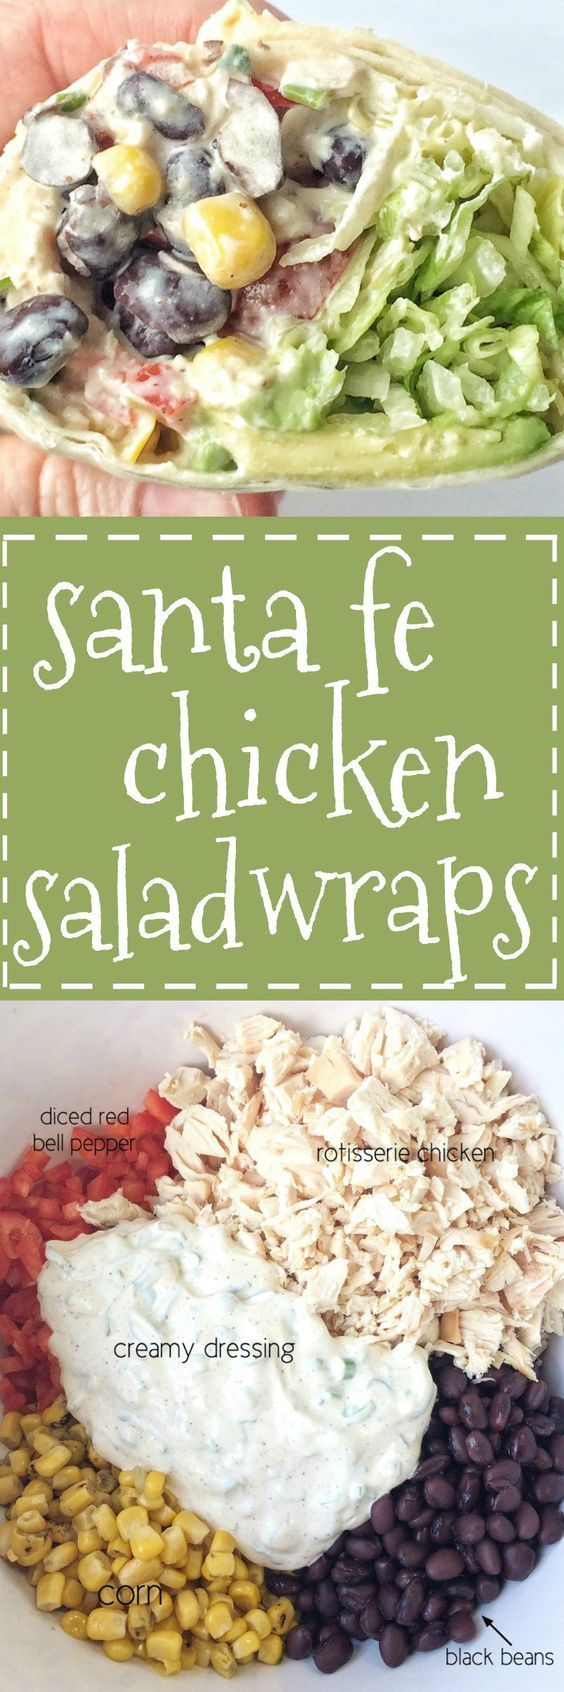 Sante Fe chicken salad wraps are loaded with a flavorful creamy dressing, chicken, beans, corn, shredded lettuce, tomatoes, and avocado. A few minutes to prepare the chicken salad is all you need for a no oven dinner that is sure to be delicious and filli